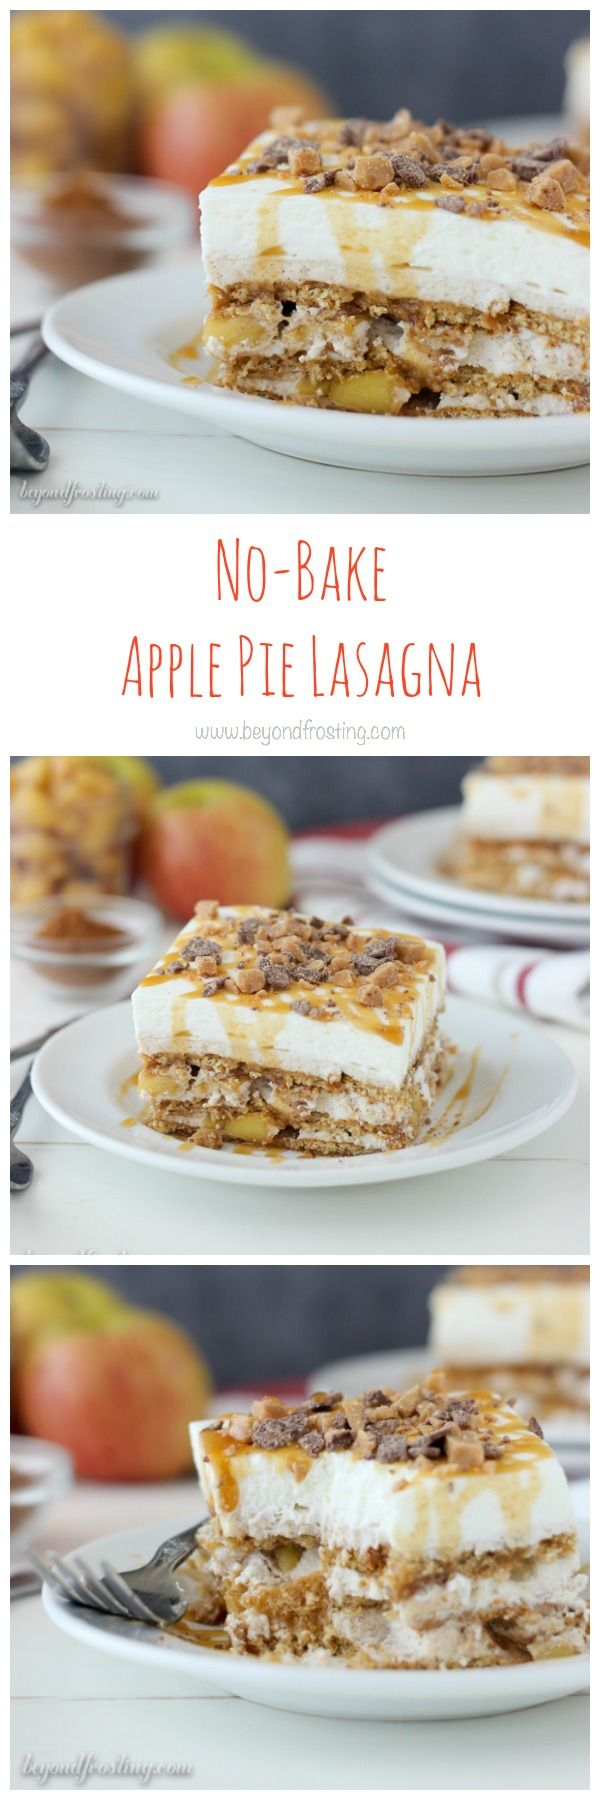 If you're looking for a no-bake dessert for your potluck, look no further. This No-Bake Apple Pie Lasagna is all you need. The Apple Pie Lasagna consists of layers of graham cracker, a caramel brown sugar cream cheese, apple pie filling, whipped cream and chocolate toffee pieces. The caramel brown sugar cream cheese is to die for, I could shovel it in my mouth by the spoonful. I'm not saying that I did that or not, but I am just saying that you COULD. I love the chocolate toffee bites…